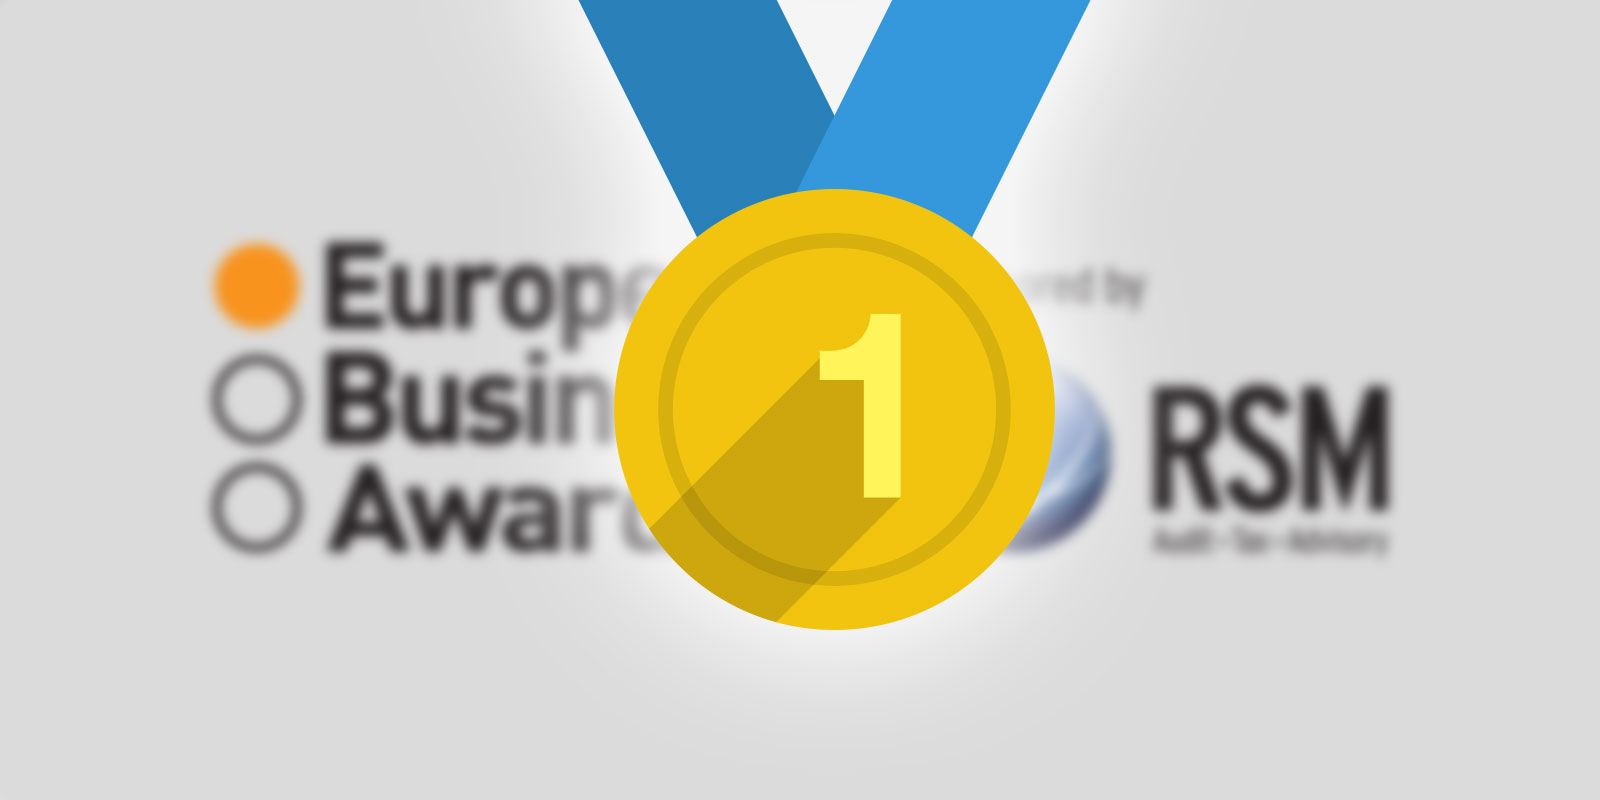 Samhall vinnare i European Business Awards